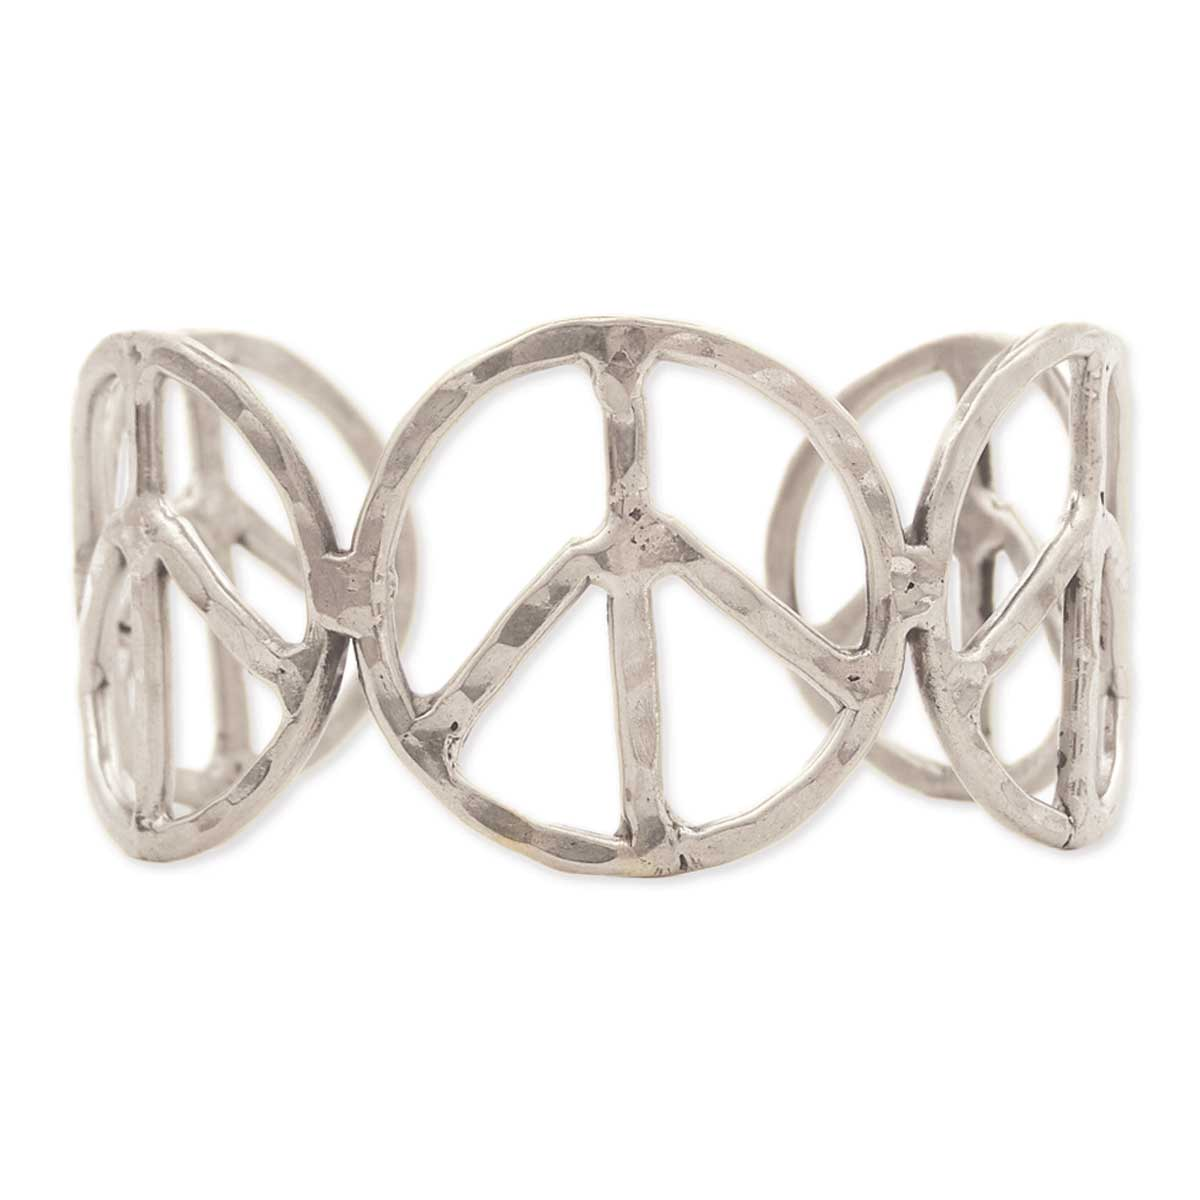 Silver Hammered Peace Sign Cuff Bracelet